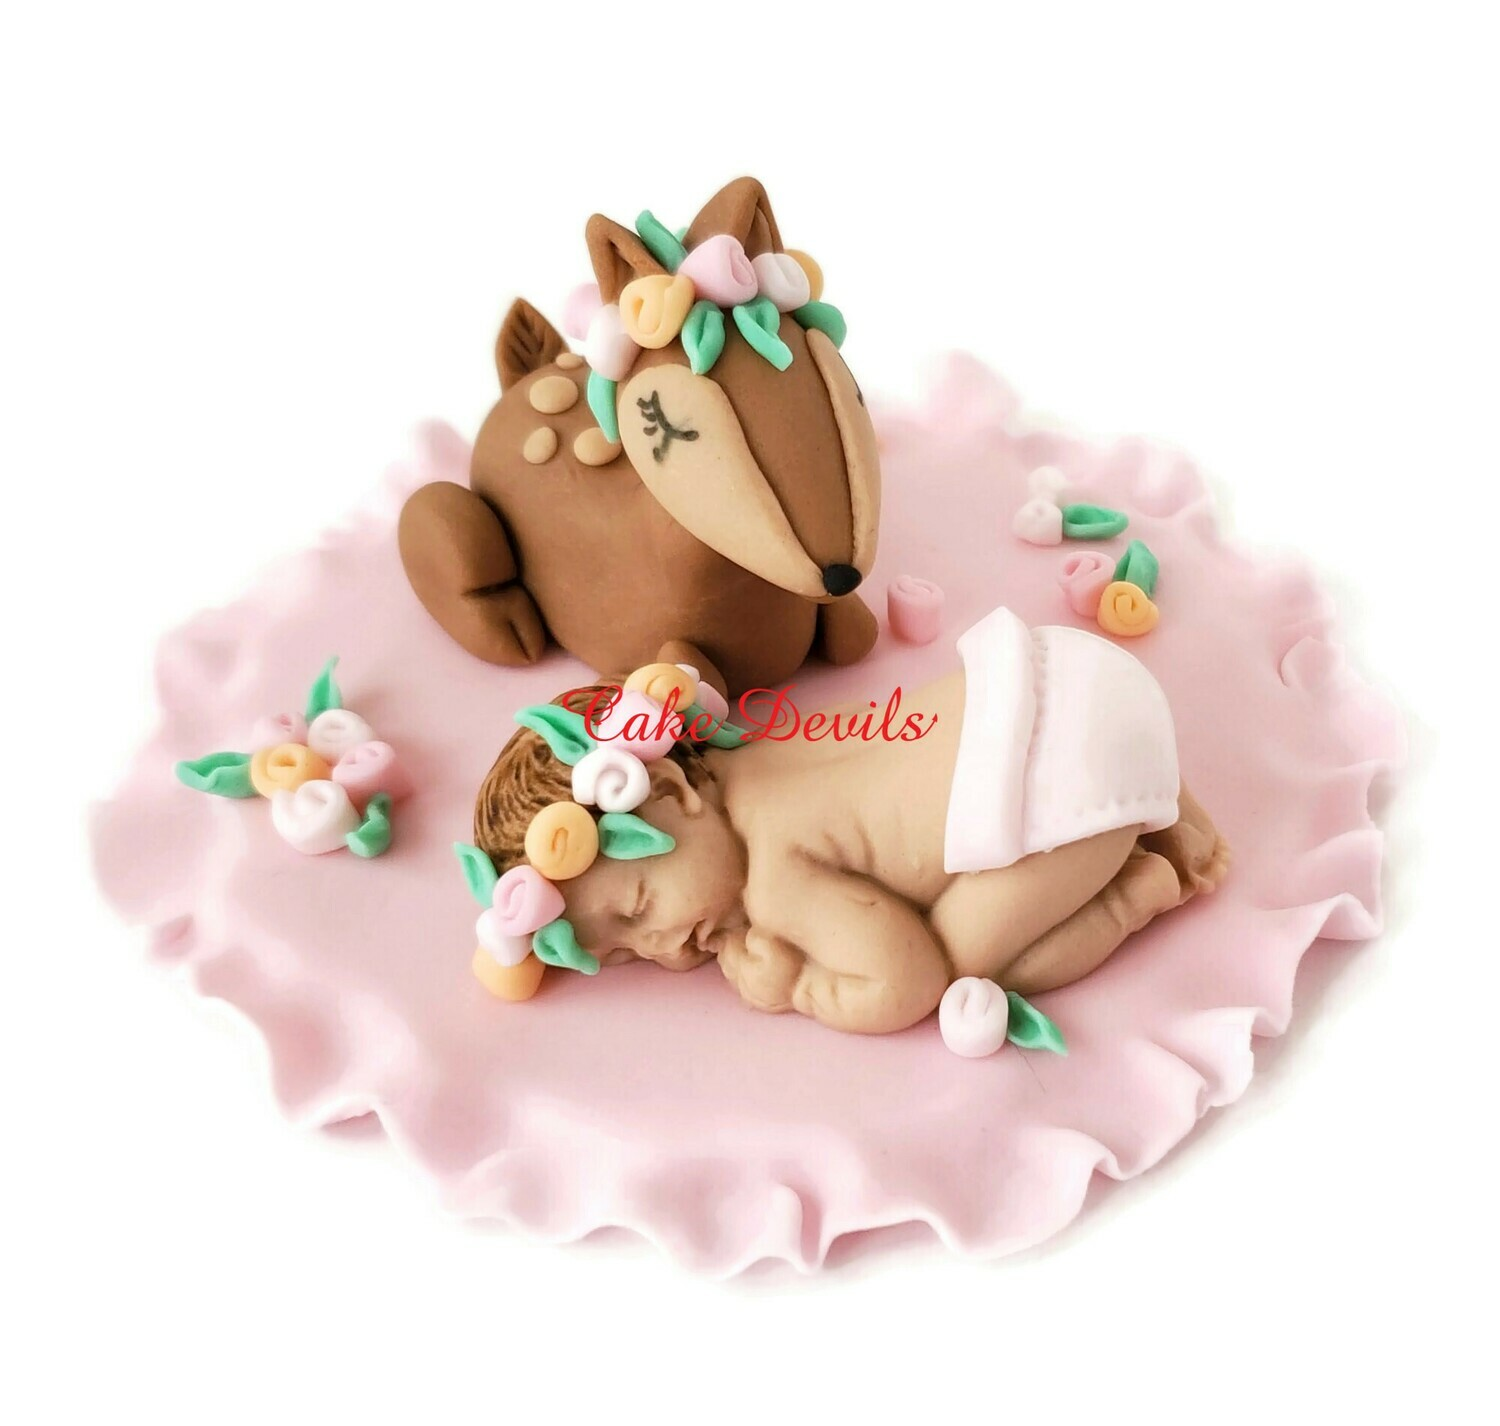 Baby Girl with Flower Crown and Floral Deer Woodland Creatures Fondant Baby Shower Cake Topper